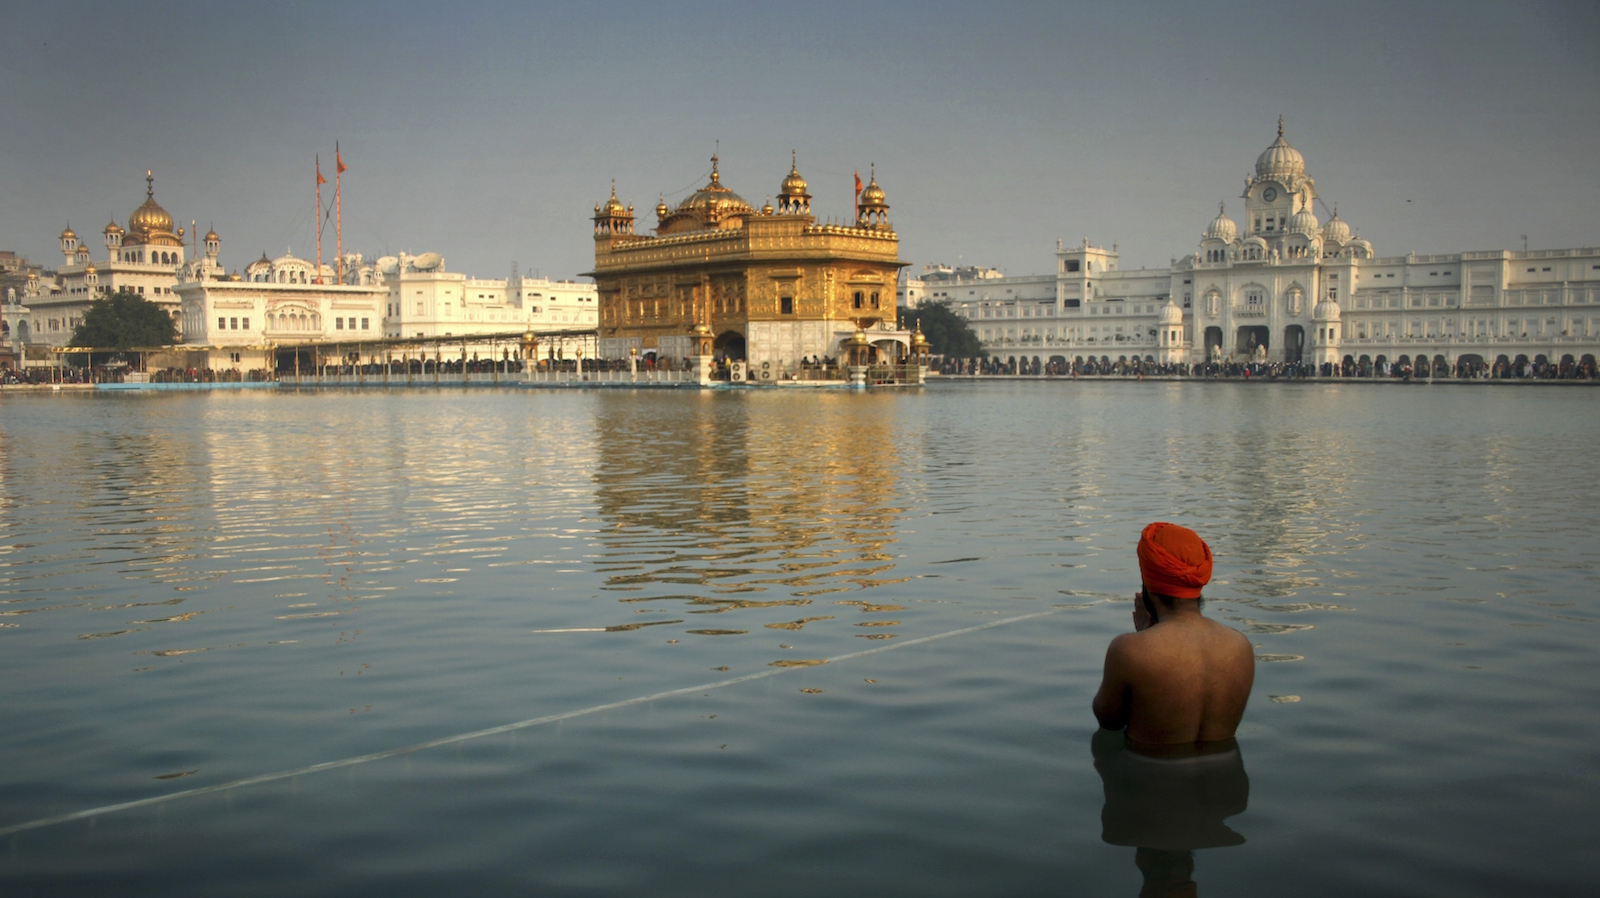 An Indian Sikh devotee takes a holy dip in the sacred pond at the Golden Temple in Amritsar, India, Wednesday, Jan. 1, 2014. Thousands of Sikh devotees stand in a queue to pay obeisance at the Golden Temple, Sikhs' holiest shrine, on the first day of the New Year.